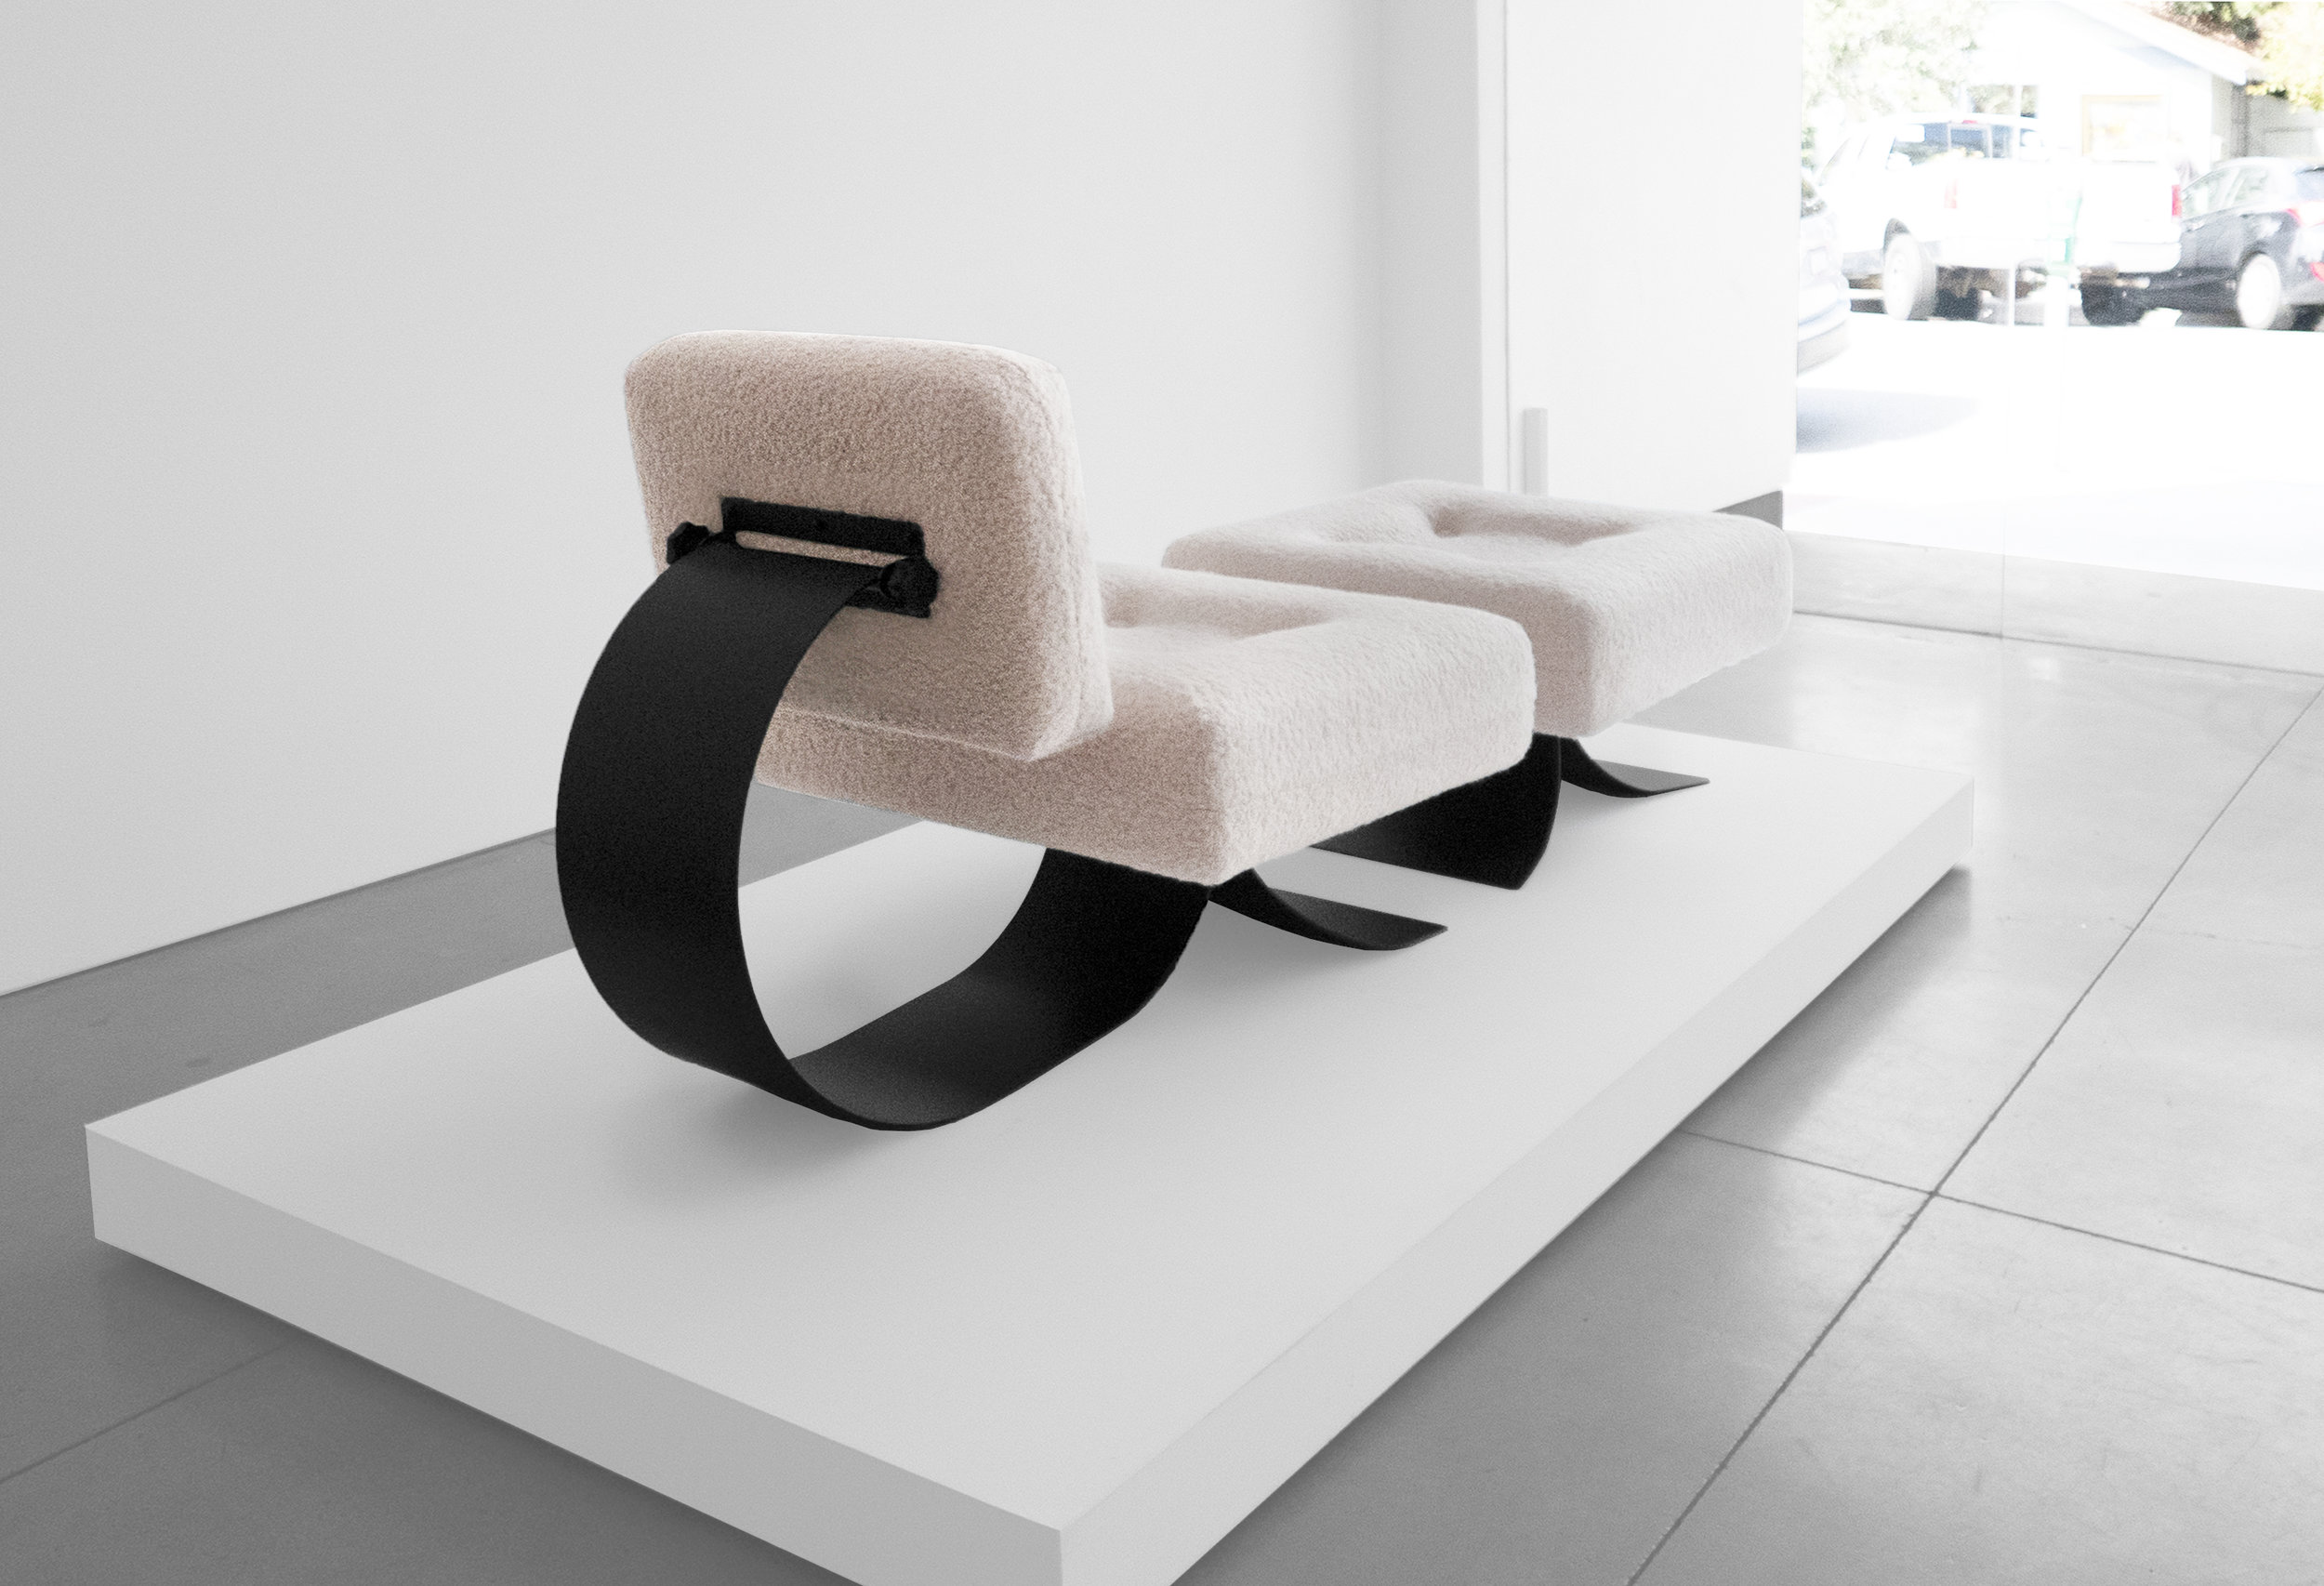 Oscar Niemeyer Attrib. Re-Issue Prototype %22Alta%22 Chair, c.1971, Upholstery, Metal, 32 H x 28 W x 31 D inches_4.jpg